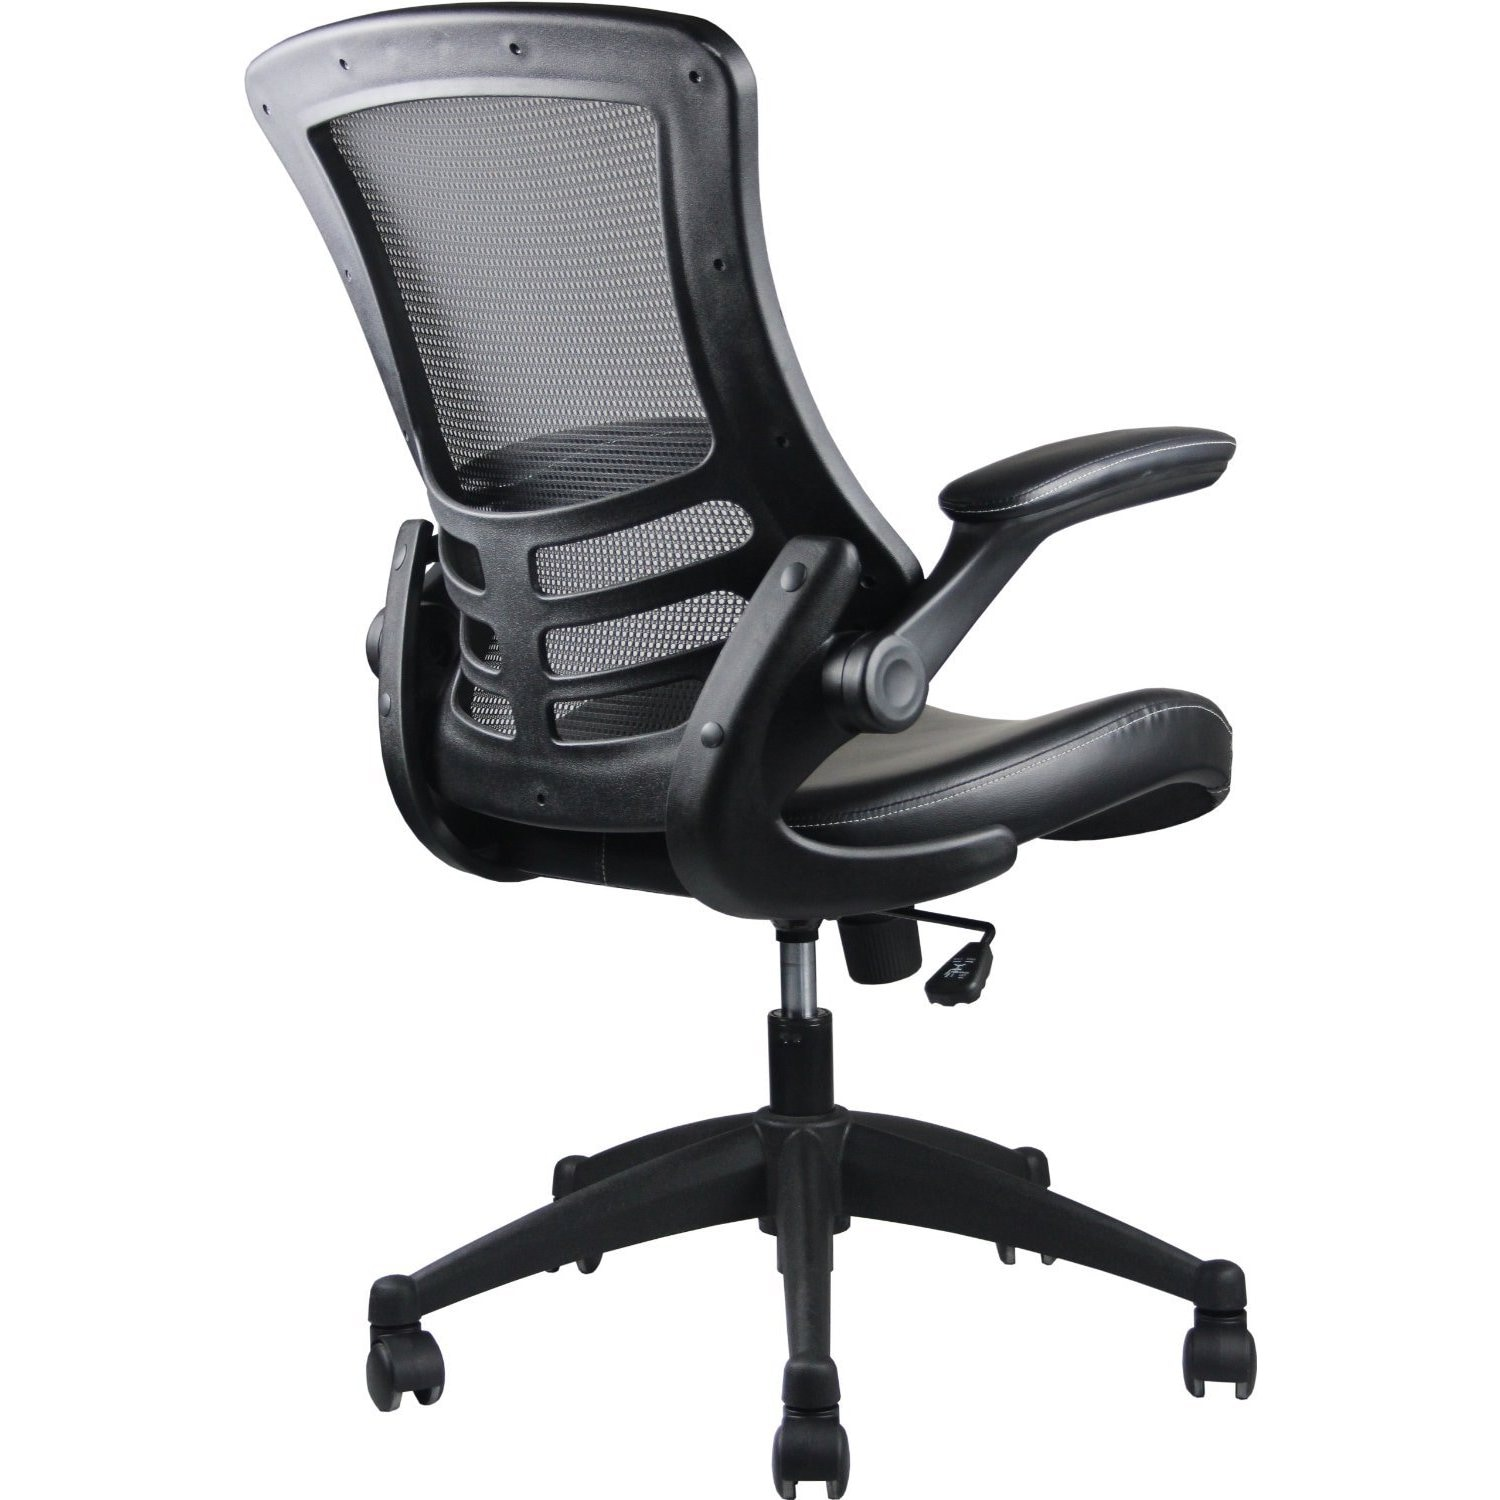 comfort office chair. Manhattan Comfort Luxurious High-back Office Chair - Free Shipping Today Overstock 16080832